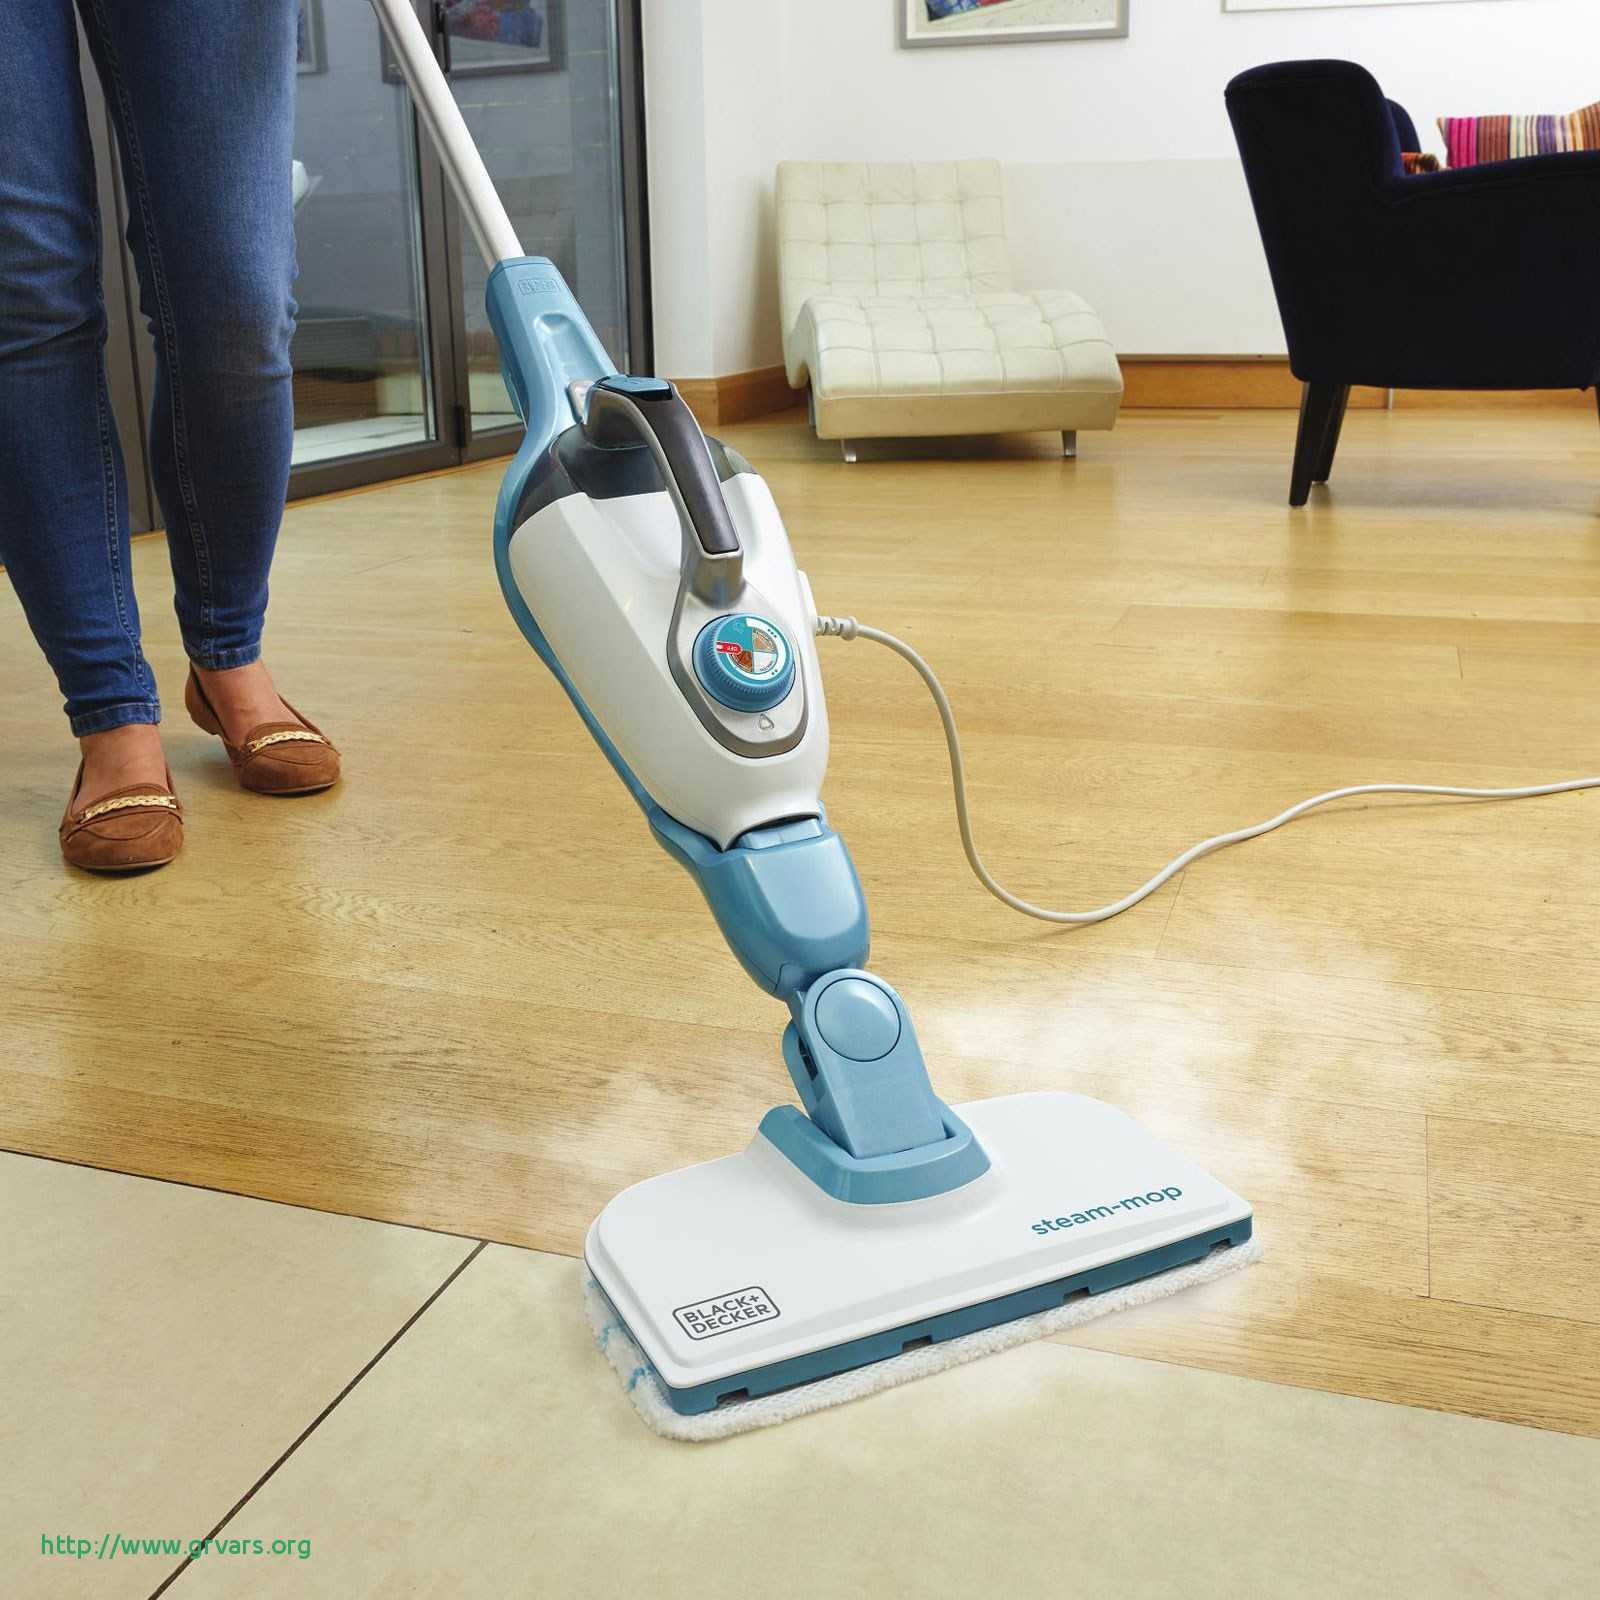 hardwood floor steam cleaner shark of hardwood floor steam mop steam hard floor cleaners reviews unique with hardwood floor steam mop steam hard floor cleaners reviews unique black decker fsmh1321 7